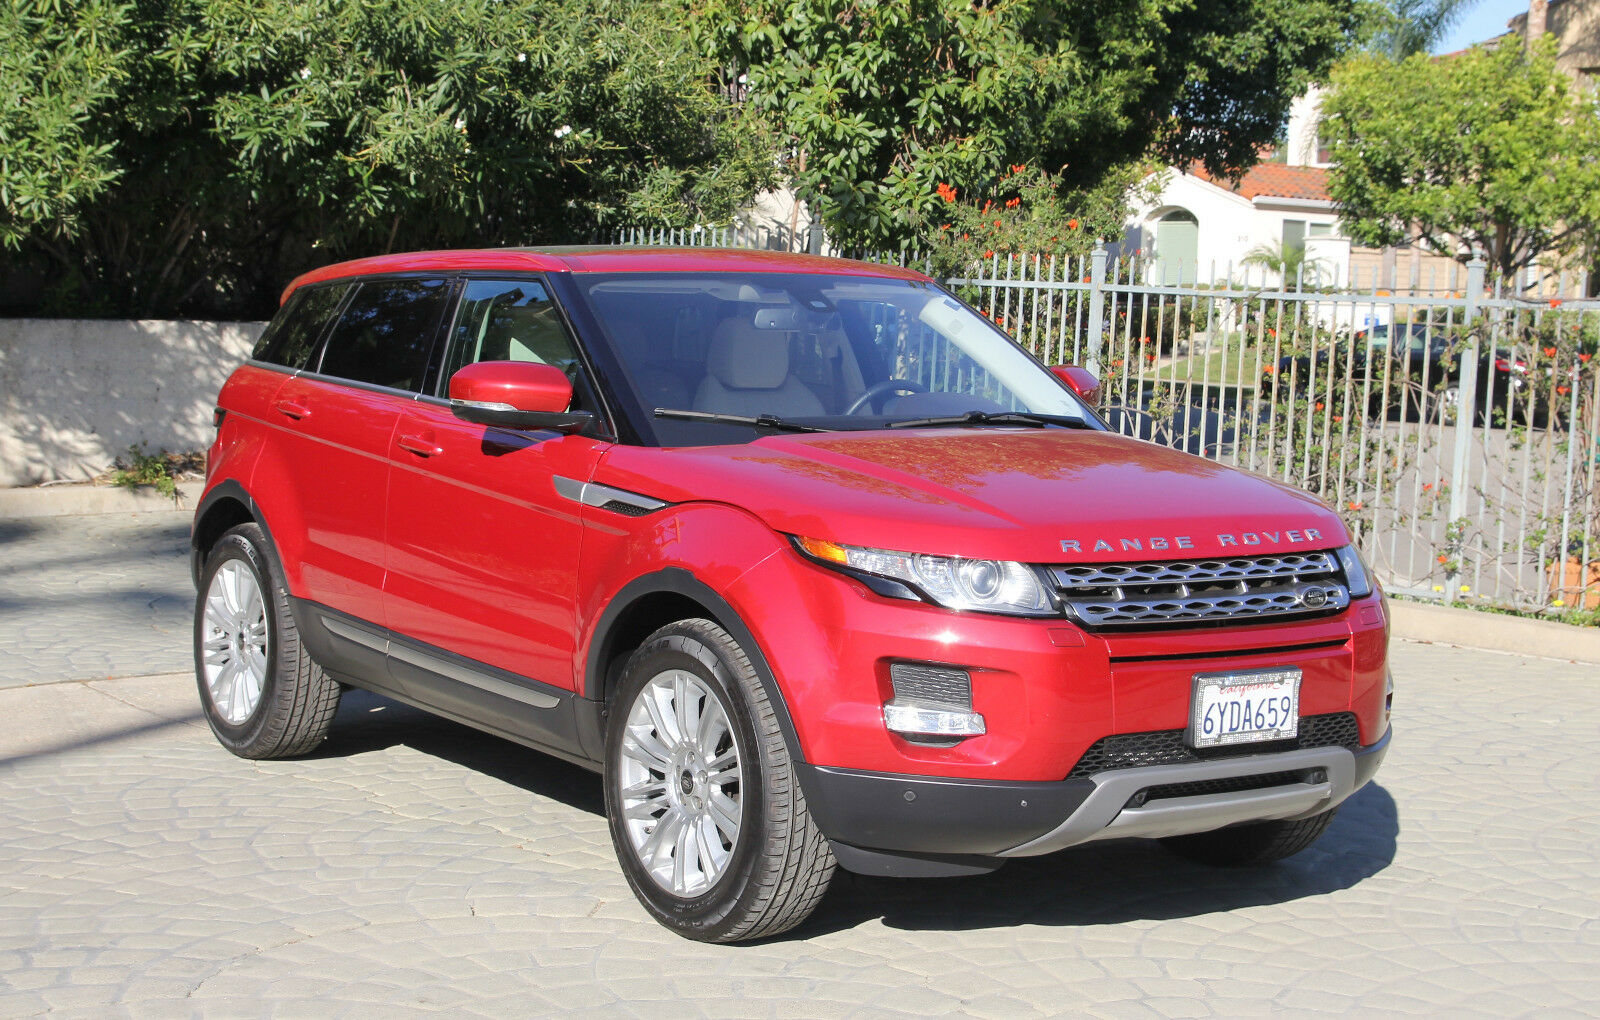 2013 Land Rover Evoque  2013 Range Rover Evoque Prestige Premium Plus - Fully Loaded - One Owner